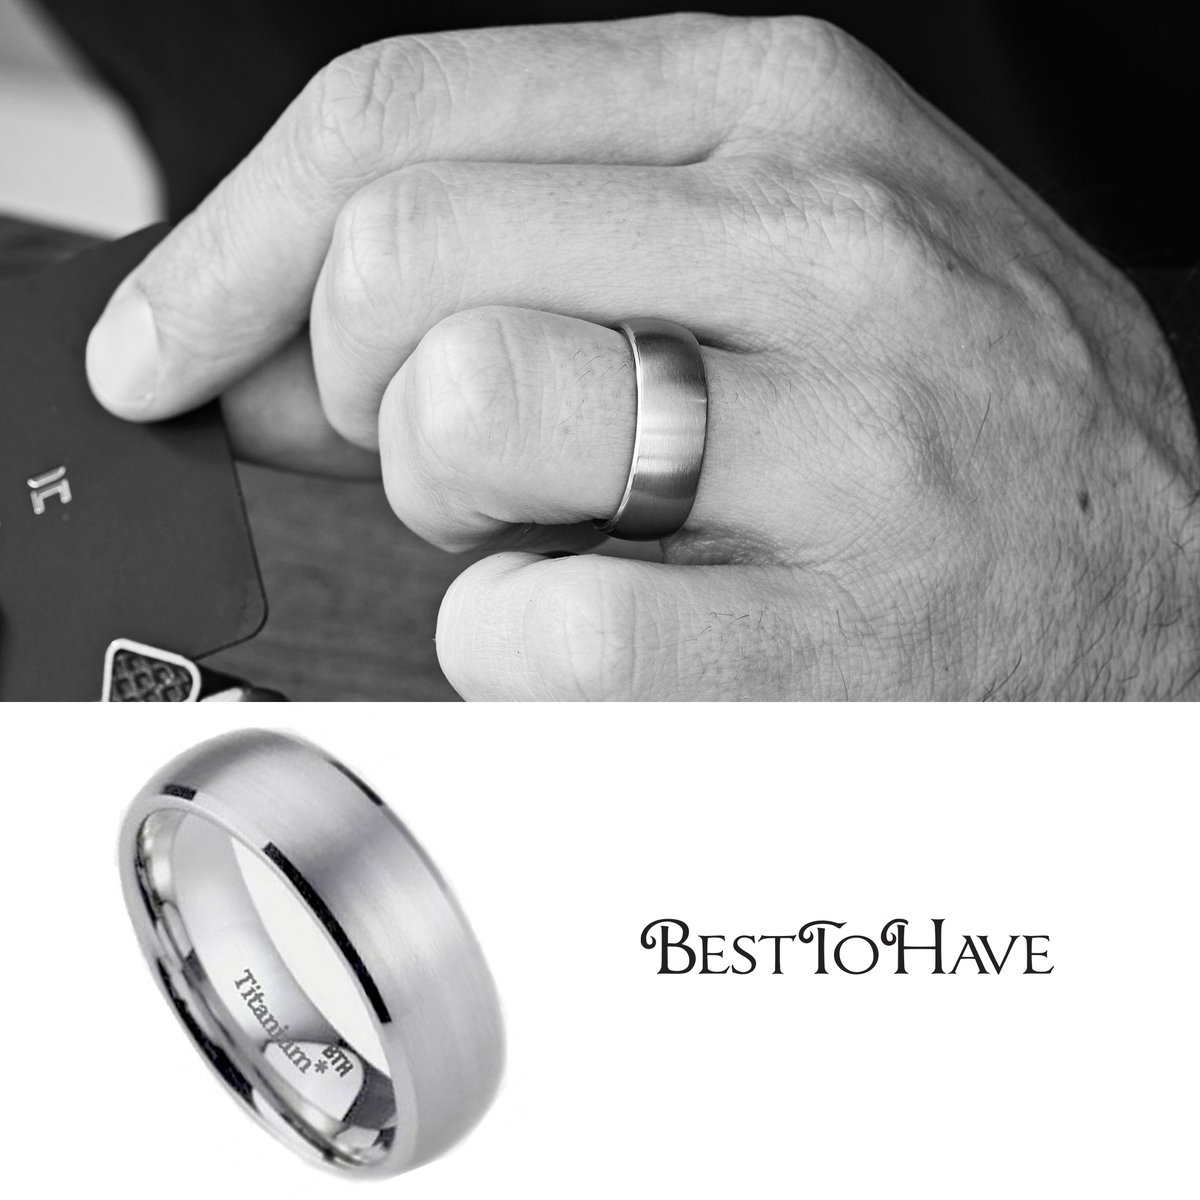 Endless Love Brushed Titanium Wedding Ring  Code: 2685 £24.99  Shop more:  #Besttohave #Besttohavejewelry #rings #engagement #outfit #outfitoftheday #menrings #weddingrings #lovejewelry #ring #titaniumRing #titaniumjewelry #cubiczirconia #wedding #titanium